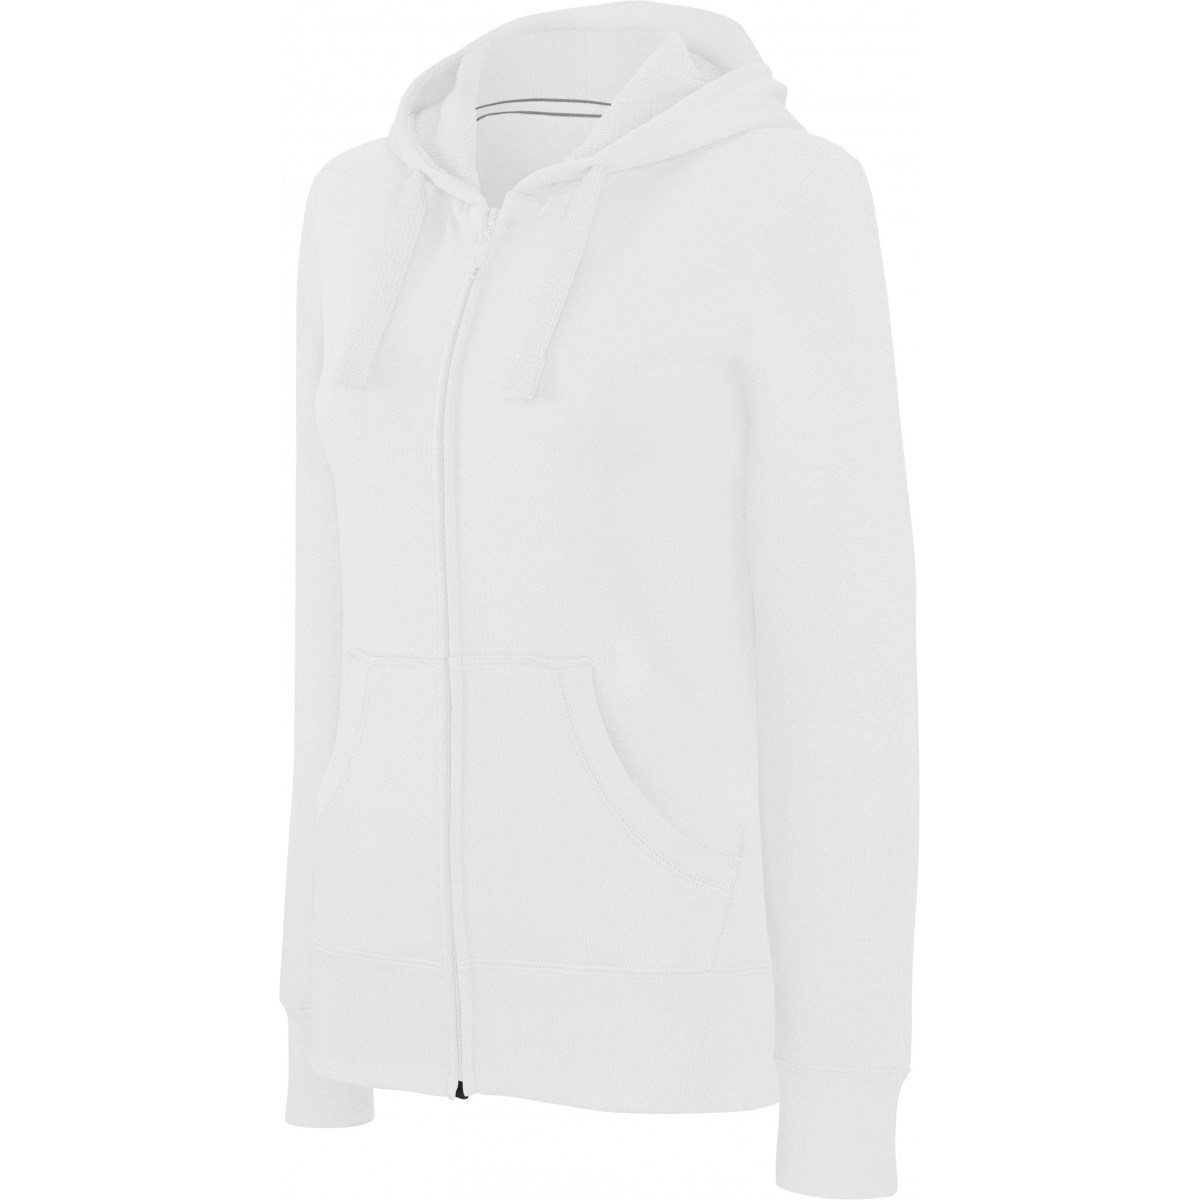 NŐI HOODED FULL ZIP SWEATSHIRT  wh